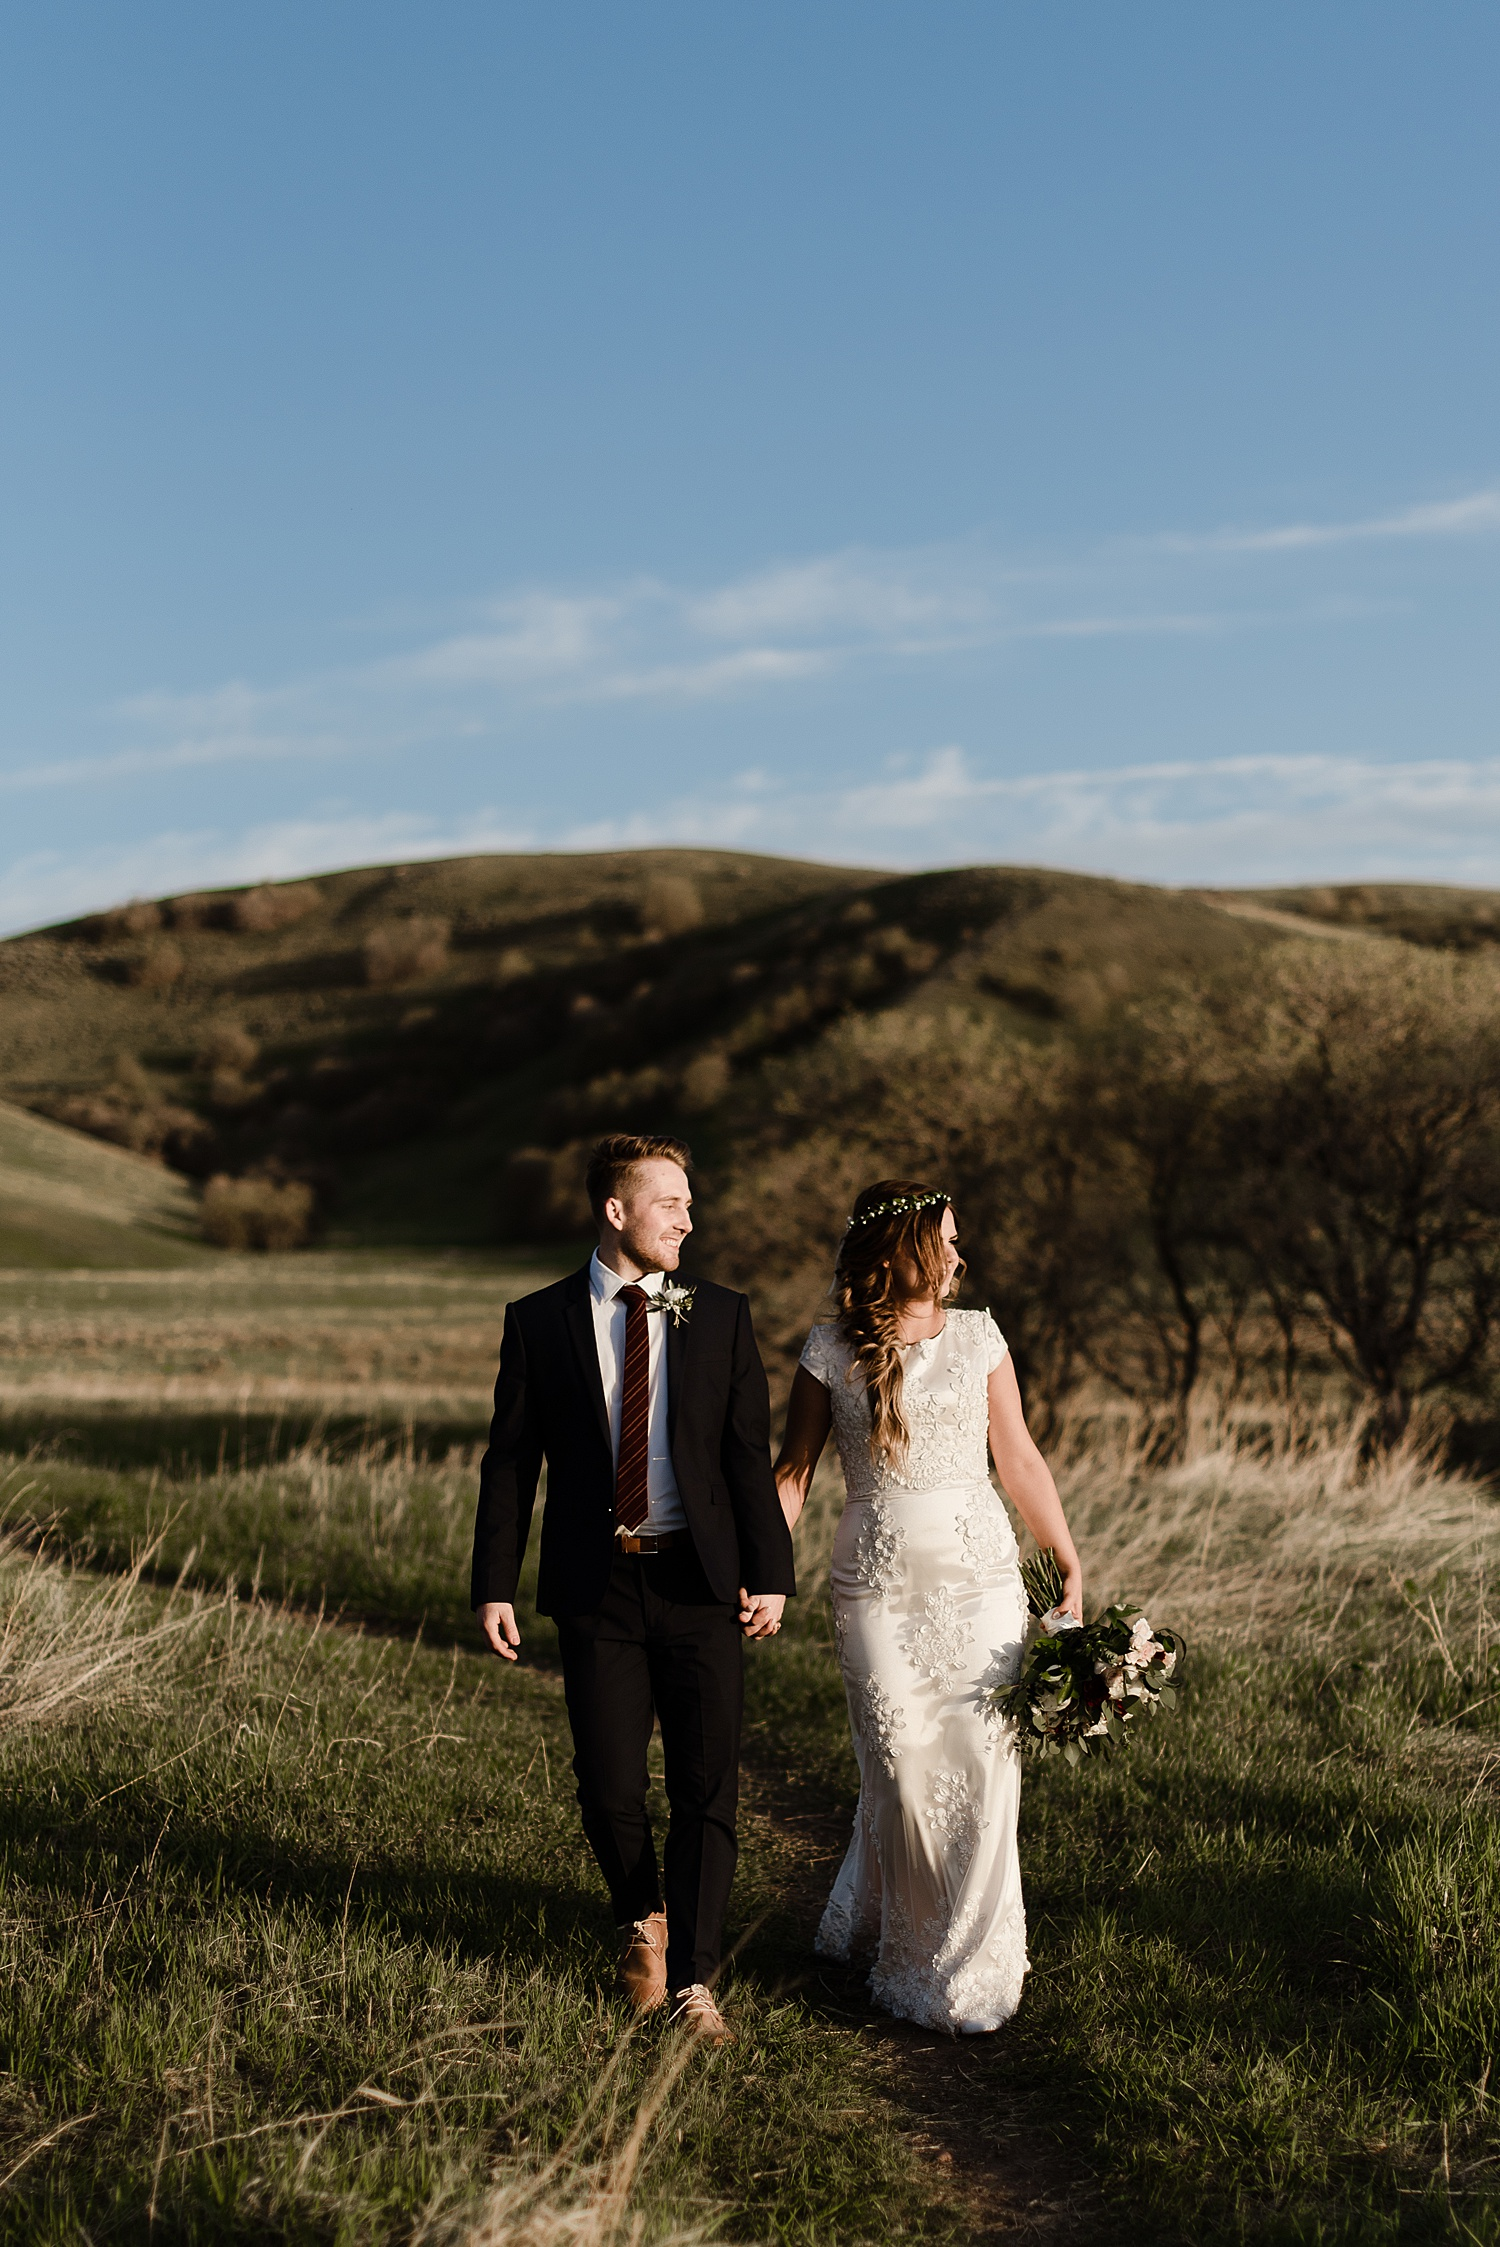 Zandra Barriga Photo - Dallas + Megan Green Hills Bridals_0012.jpg